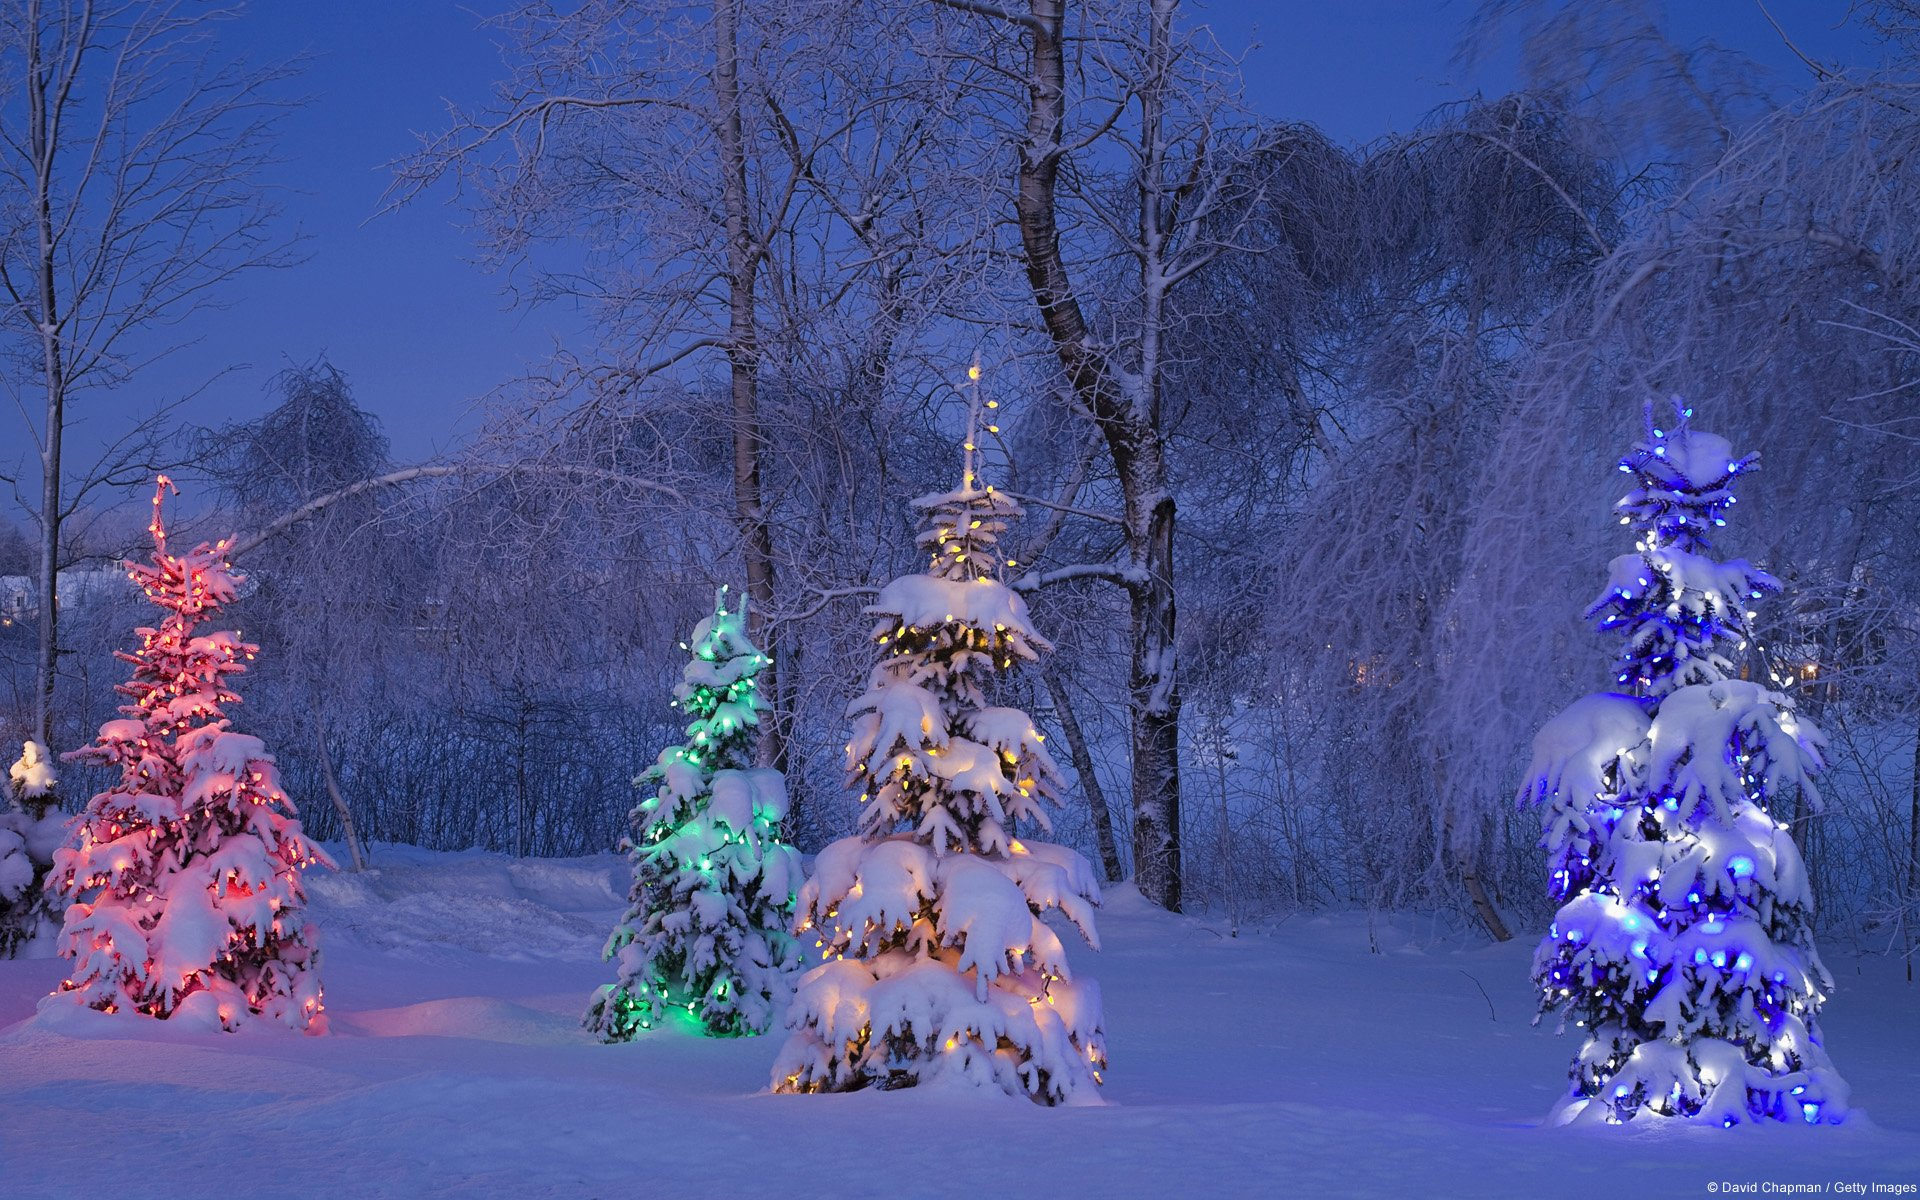 Lighted Christmas Trees In Winter Forest HD Wallpaper